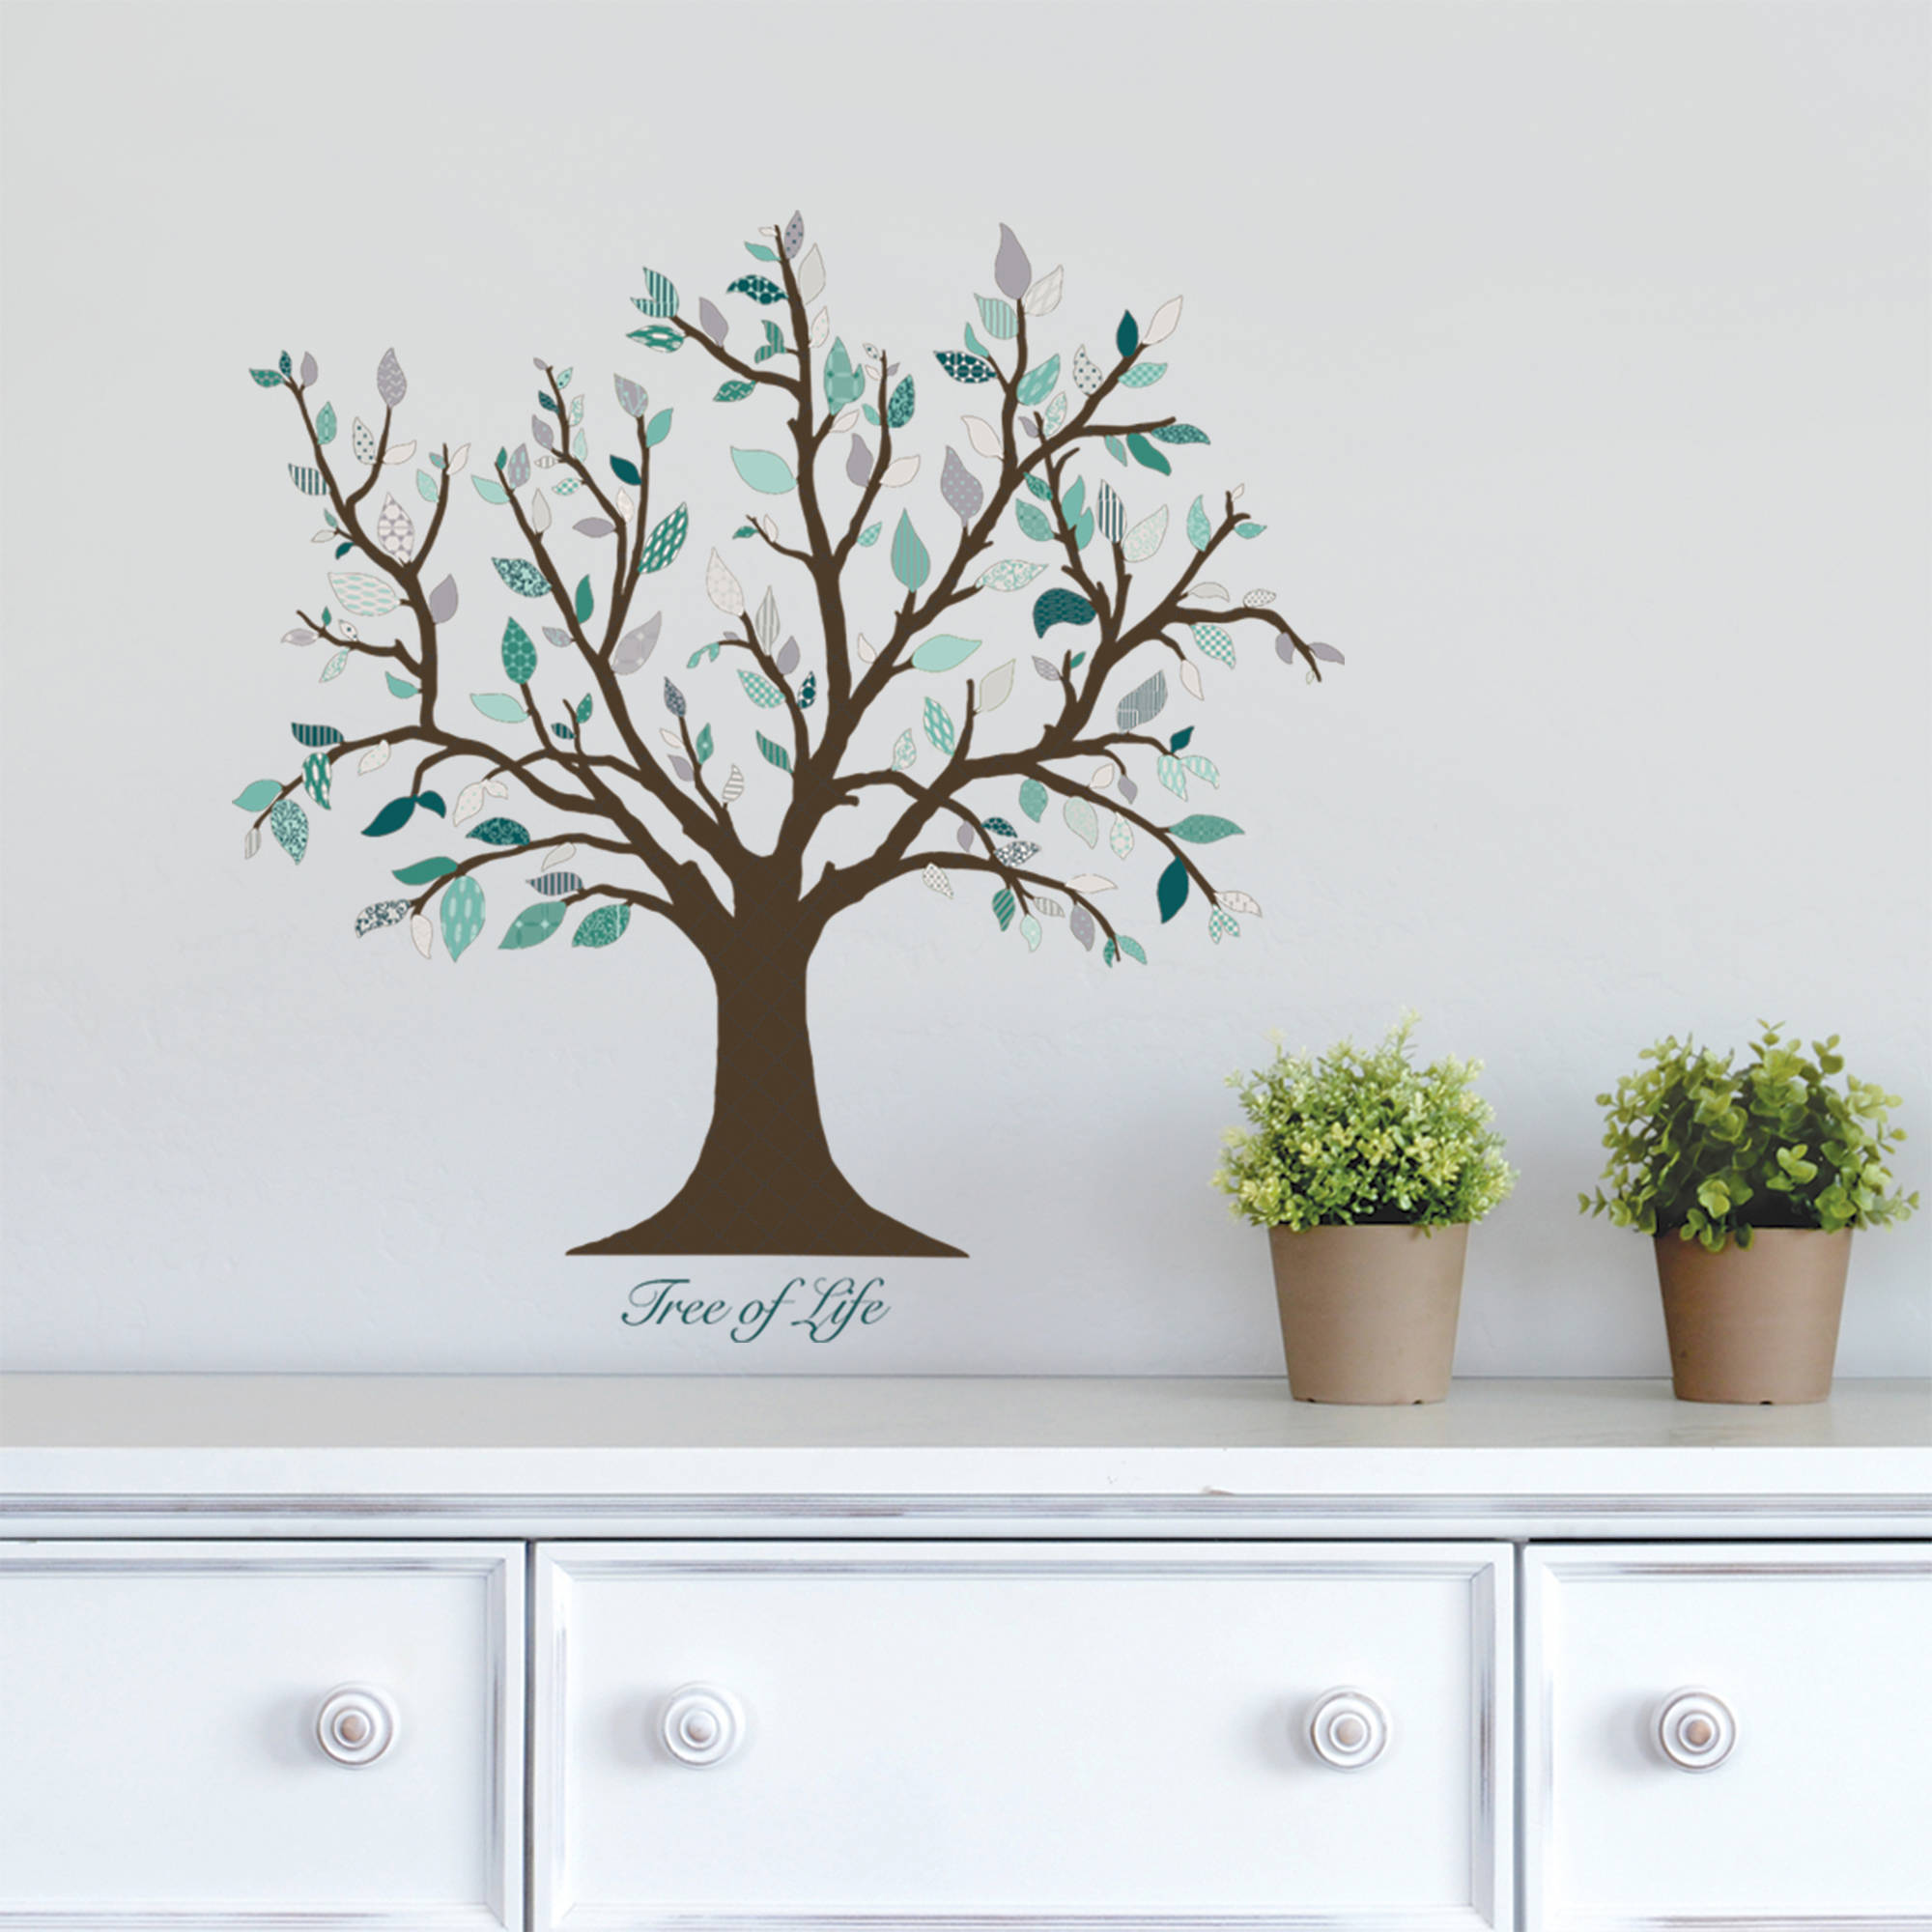 Superieur DCWV Vinyl Tree Of Life Wall Decal